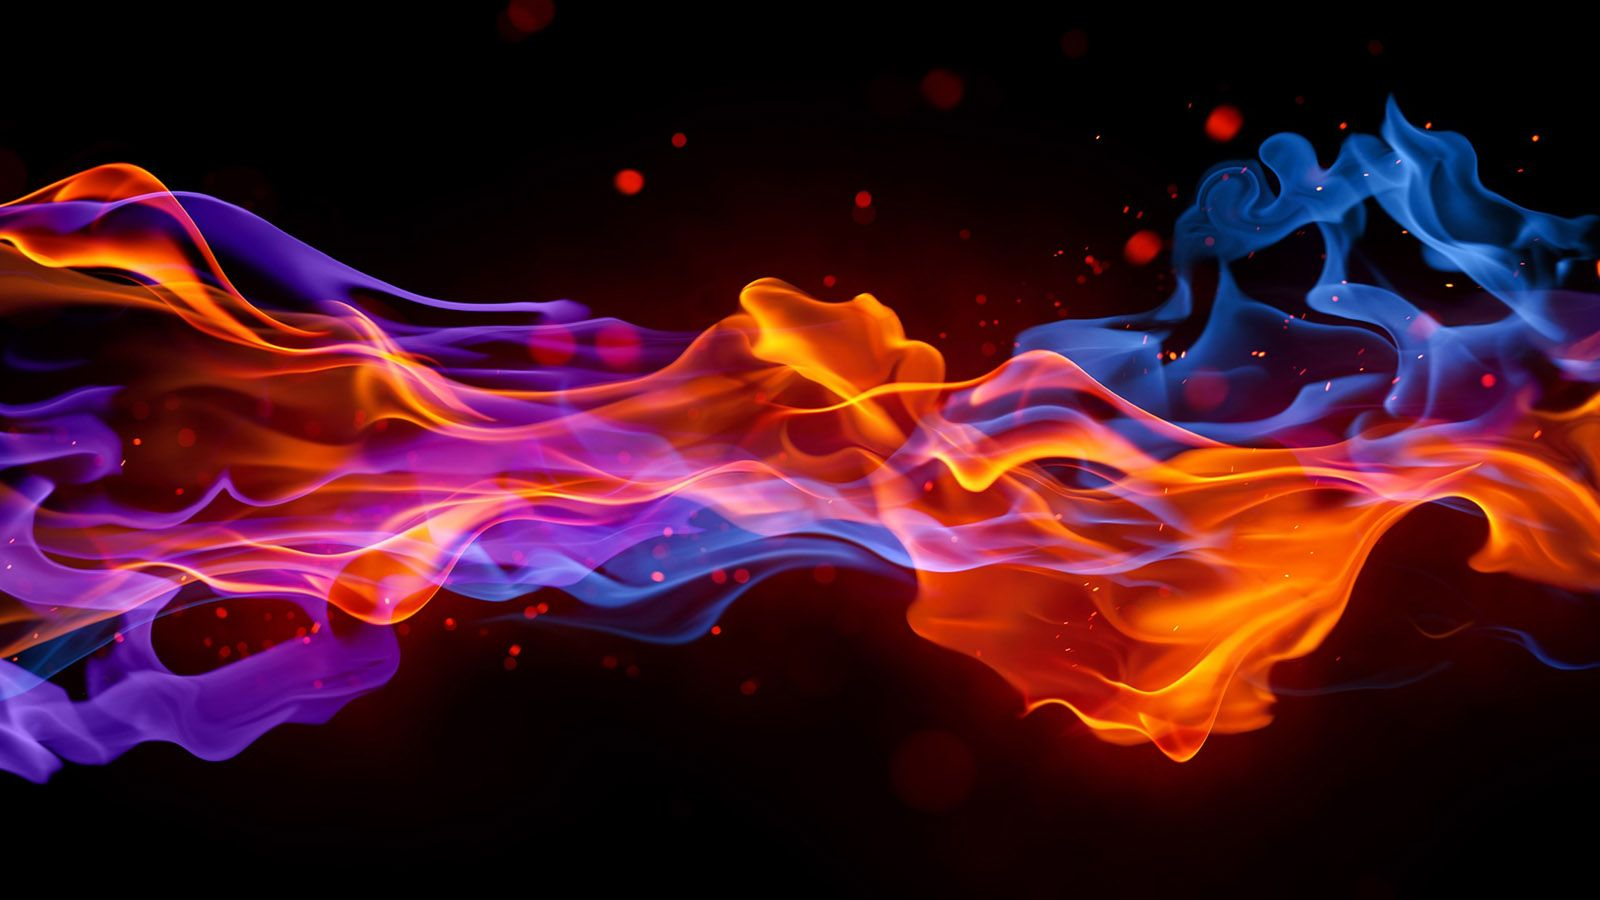 Red And Blue Fire Wallpaper 2048x1152 Wallpapers Abstract Wallpaper Rainbow Art